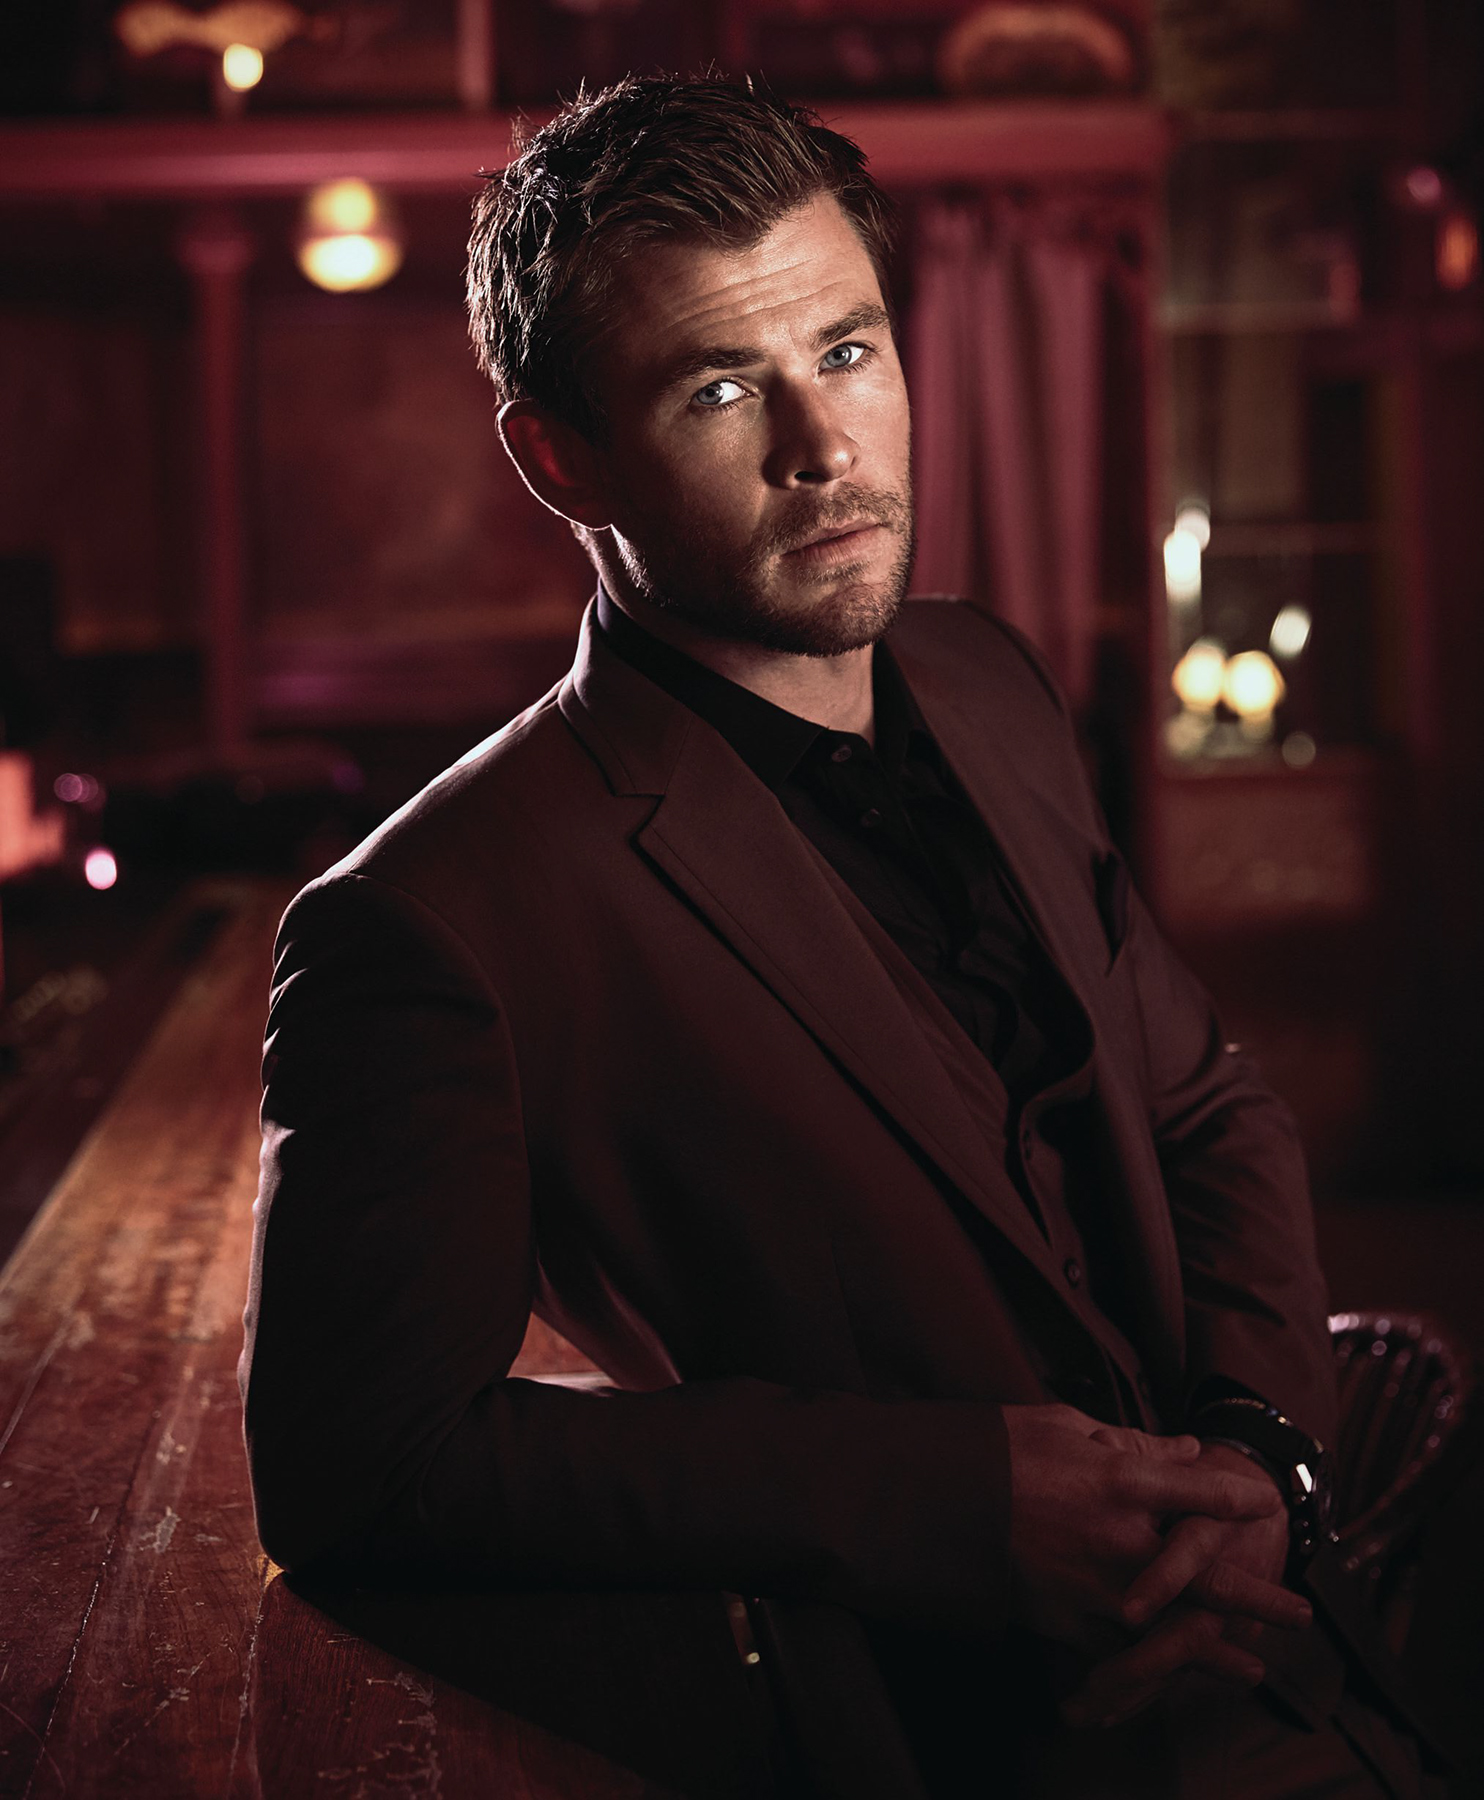 Chris Hemsworth photo #711073